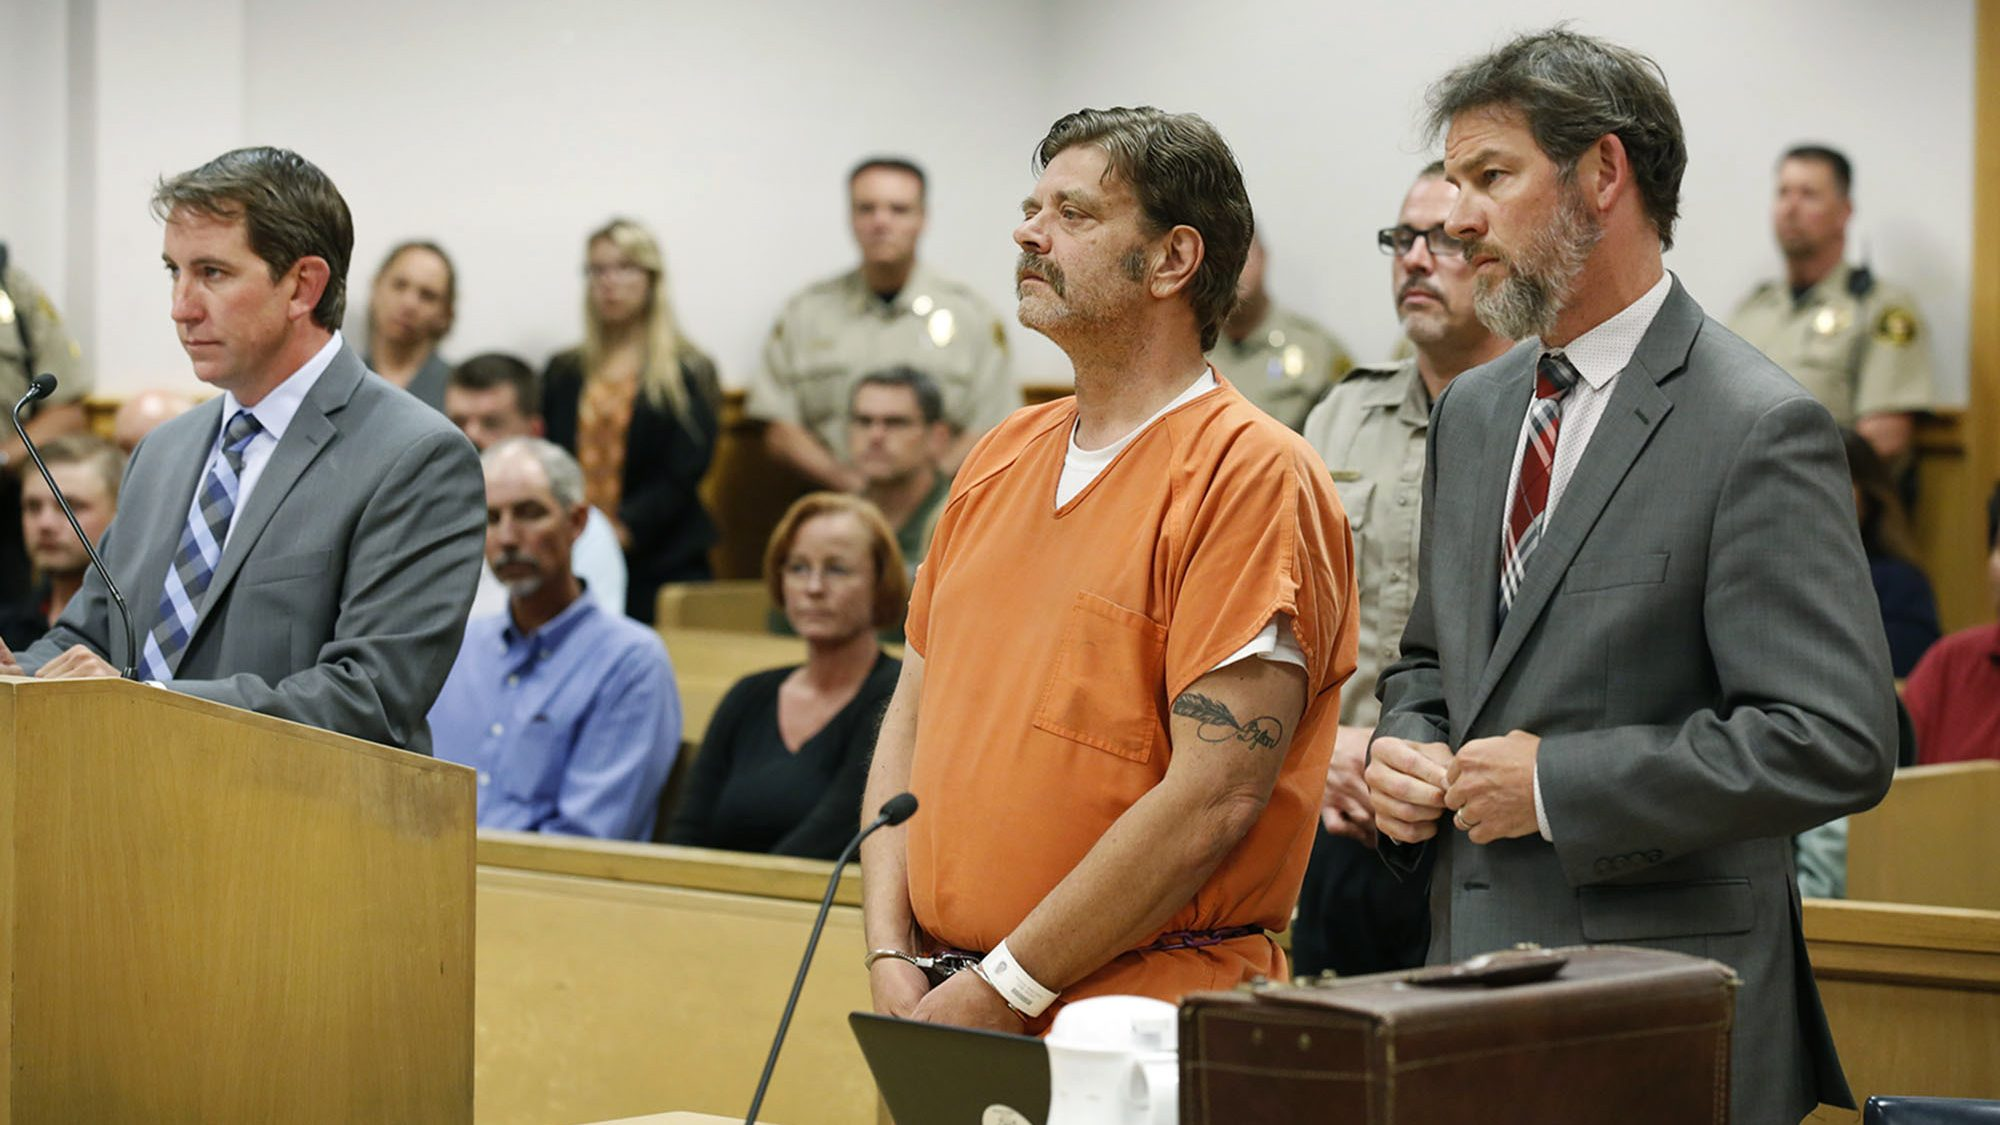 Mark Redwine makes his first appearance in district court in Durango, Colo., on Aug. 15, 2017. (Jerry McBride / The Durango Herald via Associated Press)